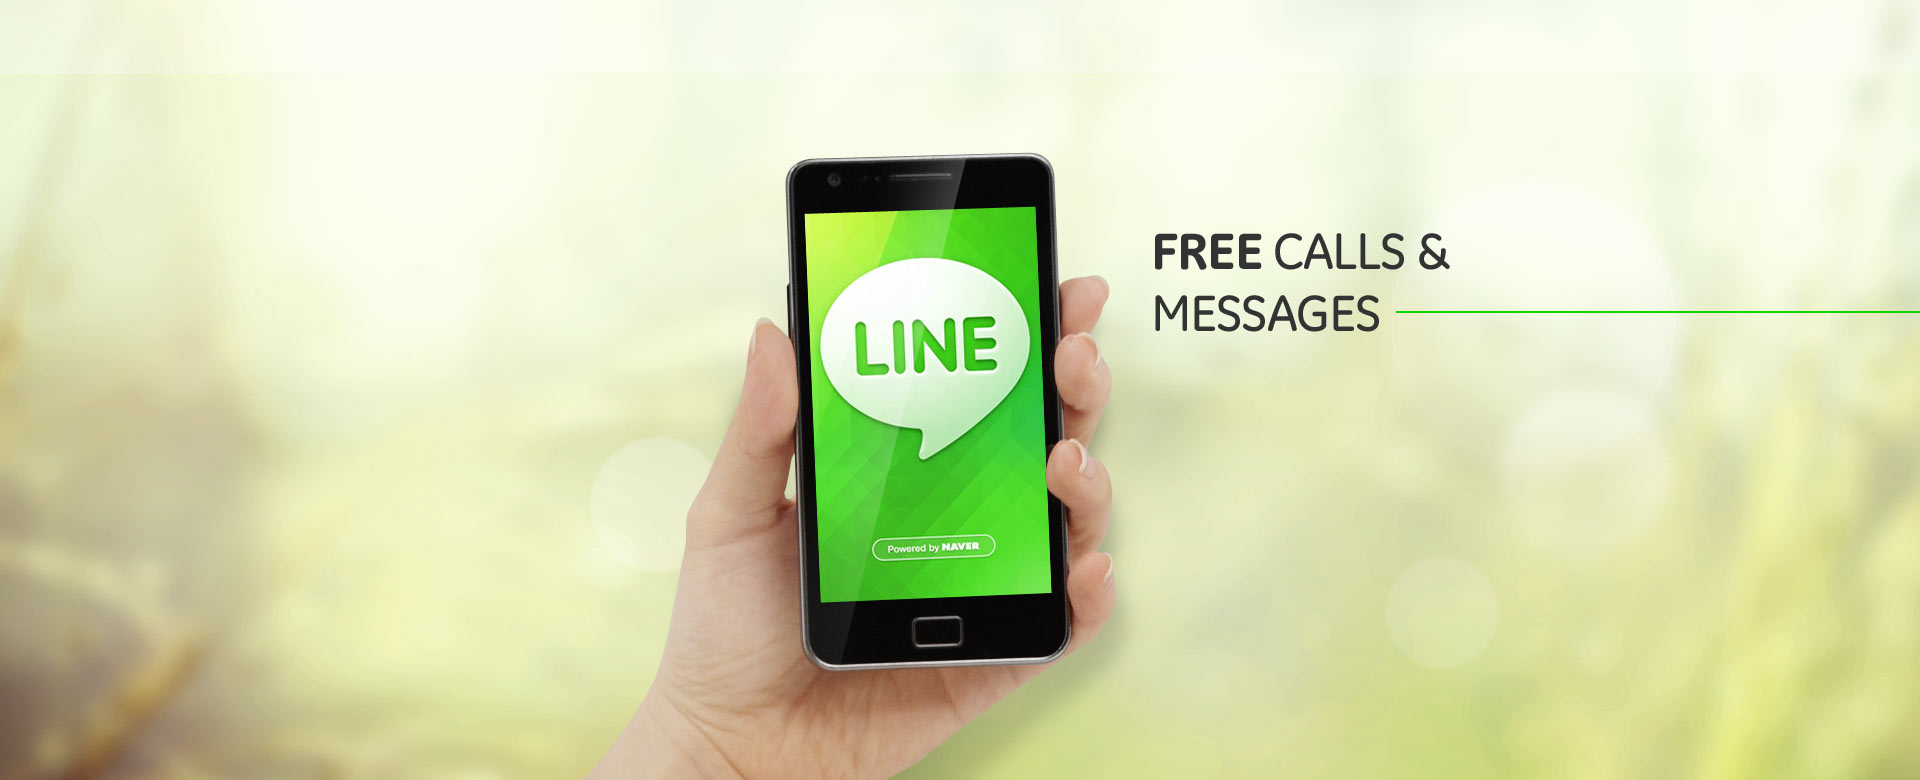 Free Voice Calls Over 3g And Wifi With Line App